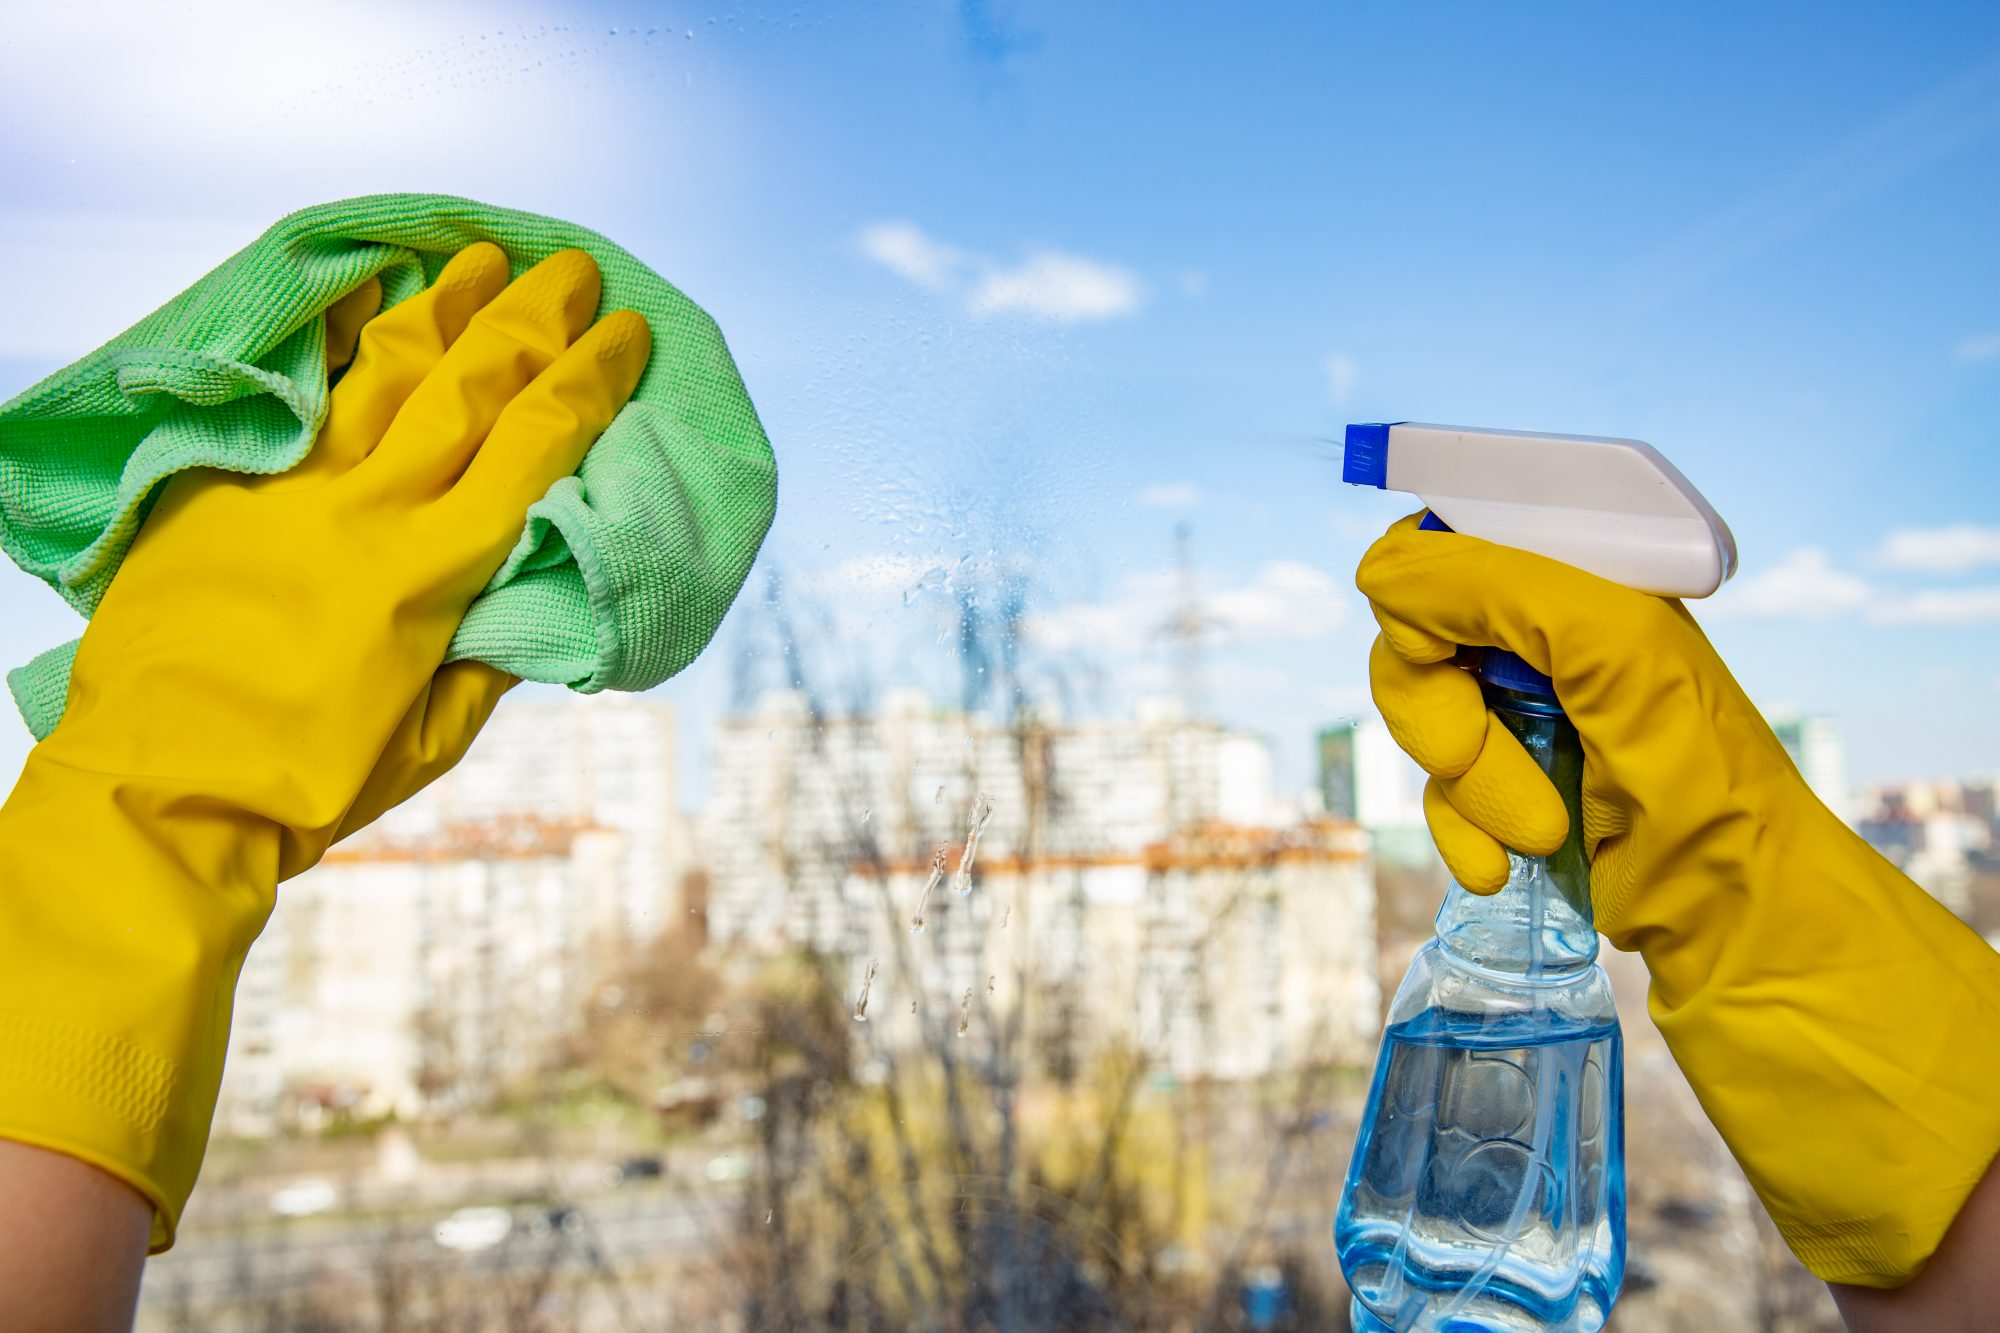 Female hands in yellow gloves cleaning window with green rag and spray detergent. Spring cleanup, housework concept